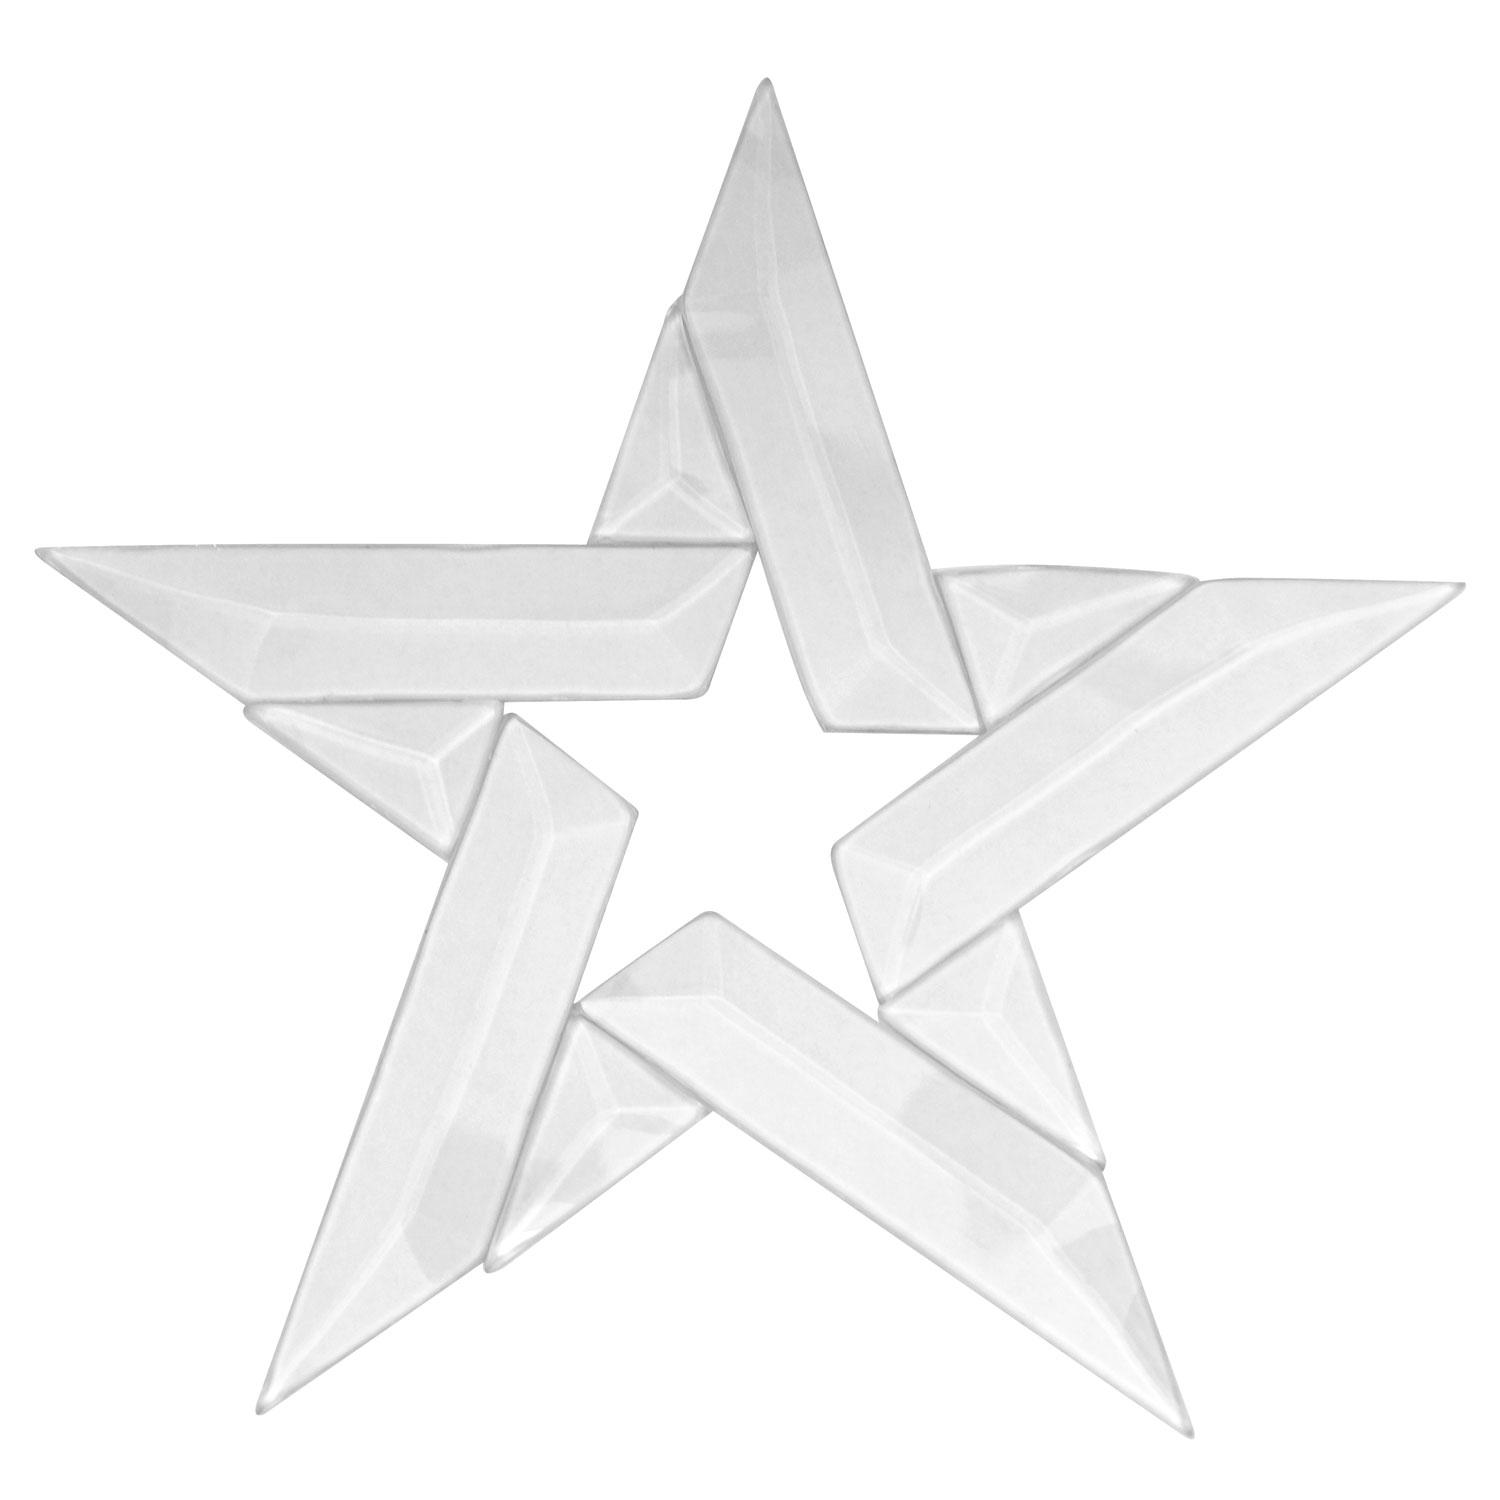 Star Within a Star Bevel Cluster